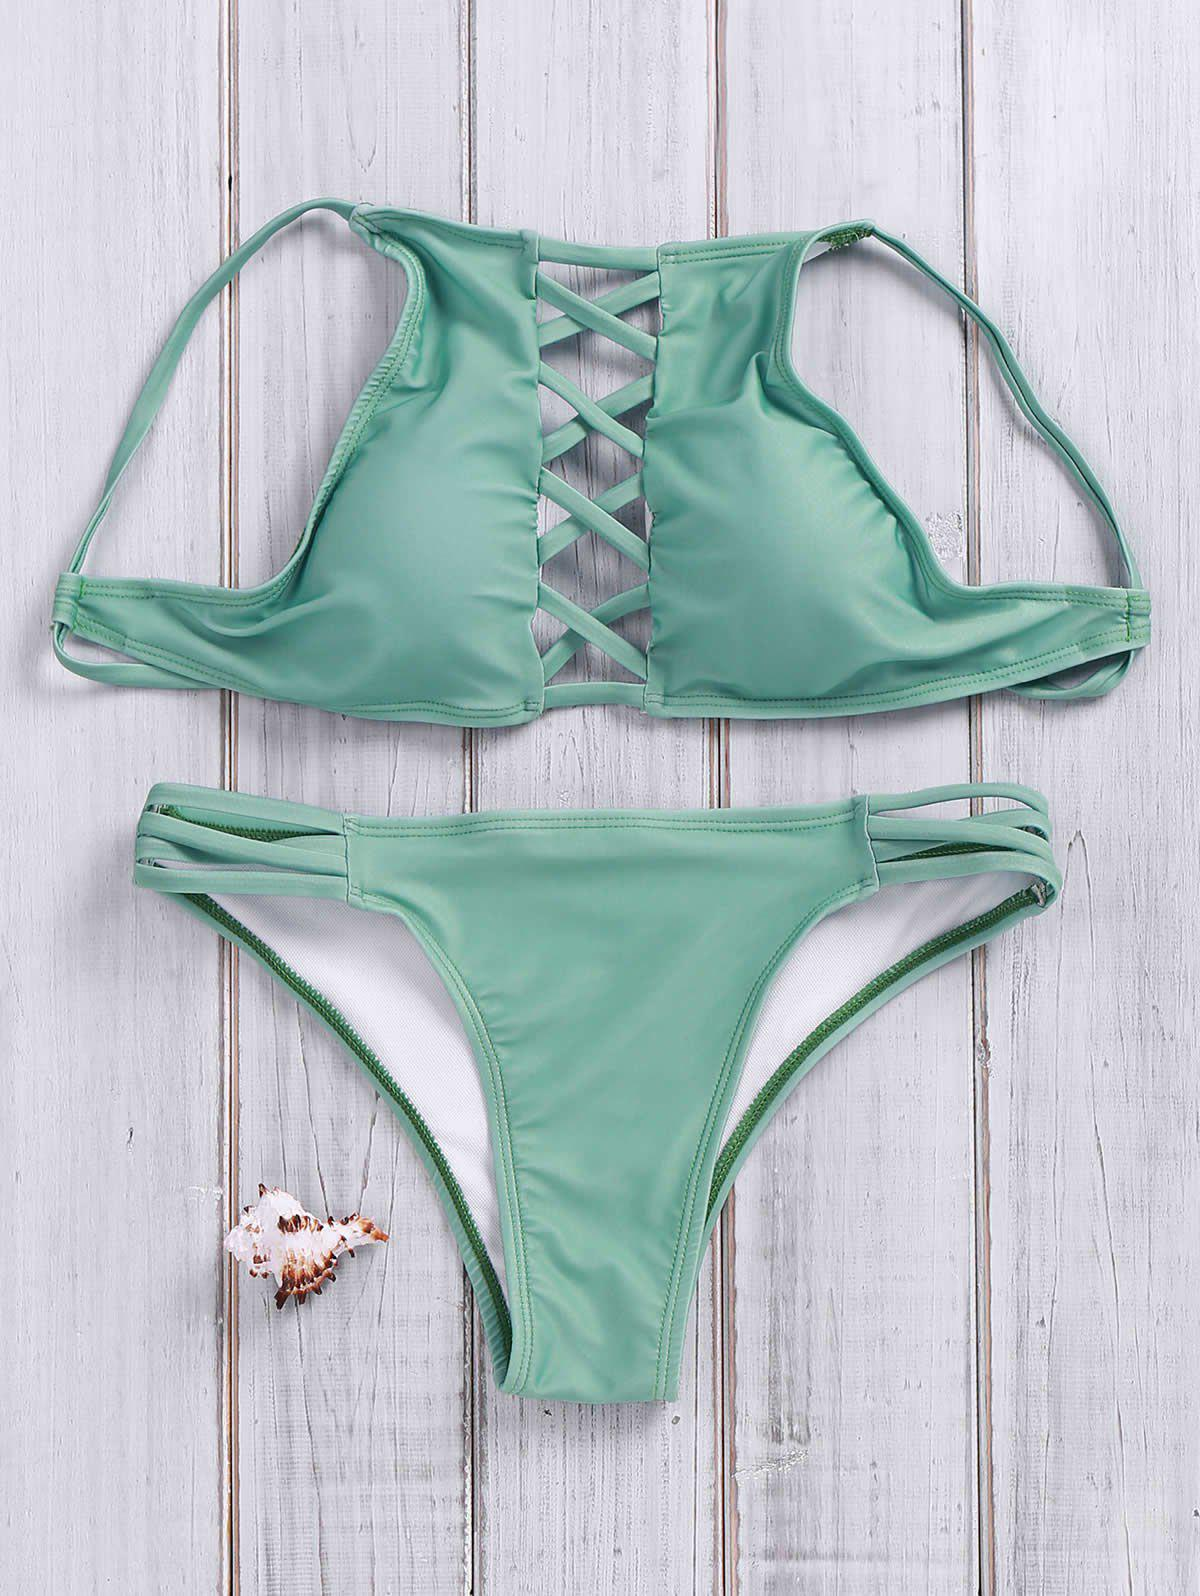 Lace Up Criss Cross Halter Bathing SuitsWOMEN<br><br>Size: M; Color: GREEN; Swimwear Type: Bikini; Gender: For Women; Material: Polyester; Bra Style: Unlined; Support Type: Wire Free; Neckline: Halter; Pattern Type: Solid; Embellishment: Criss-Cross; Waist: Natural; Elasticity: Elastic; Weight: 0.209kg; Package Contents: 1 x Top  1 x Briefs;